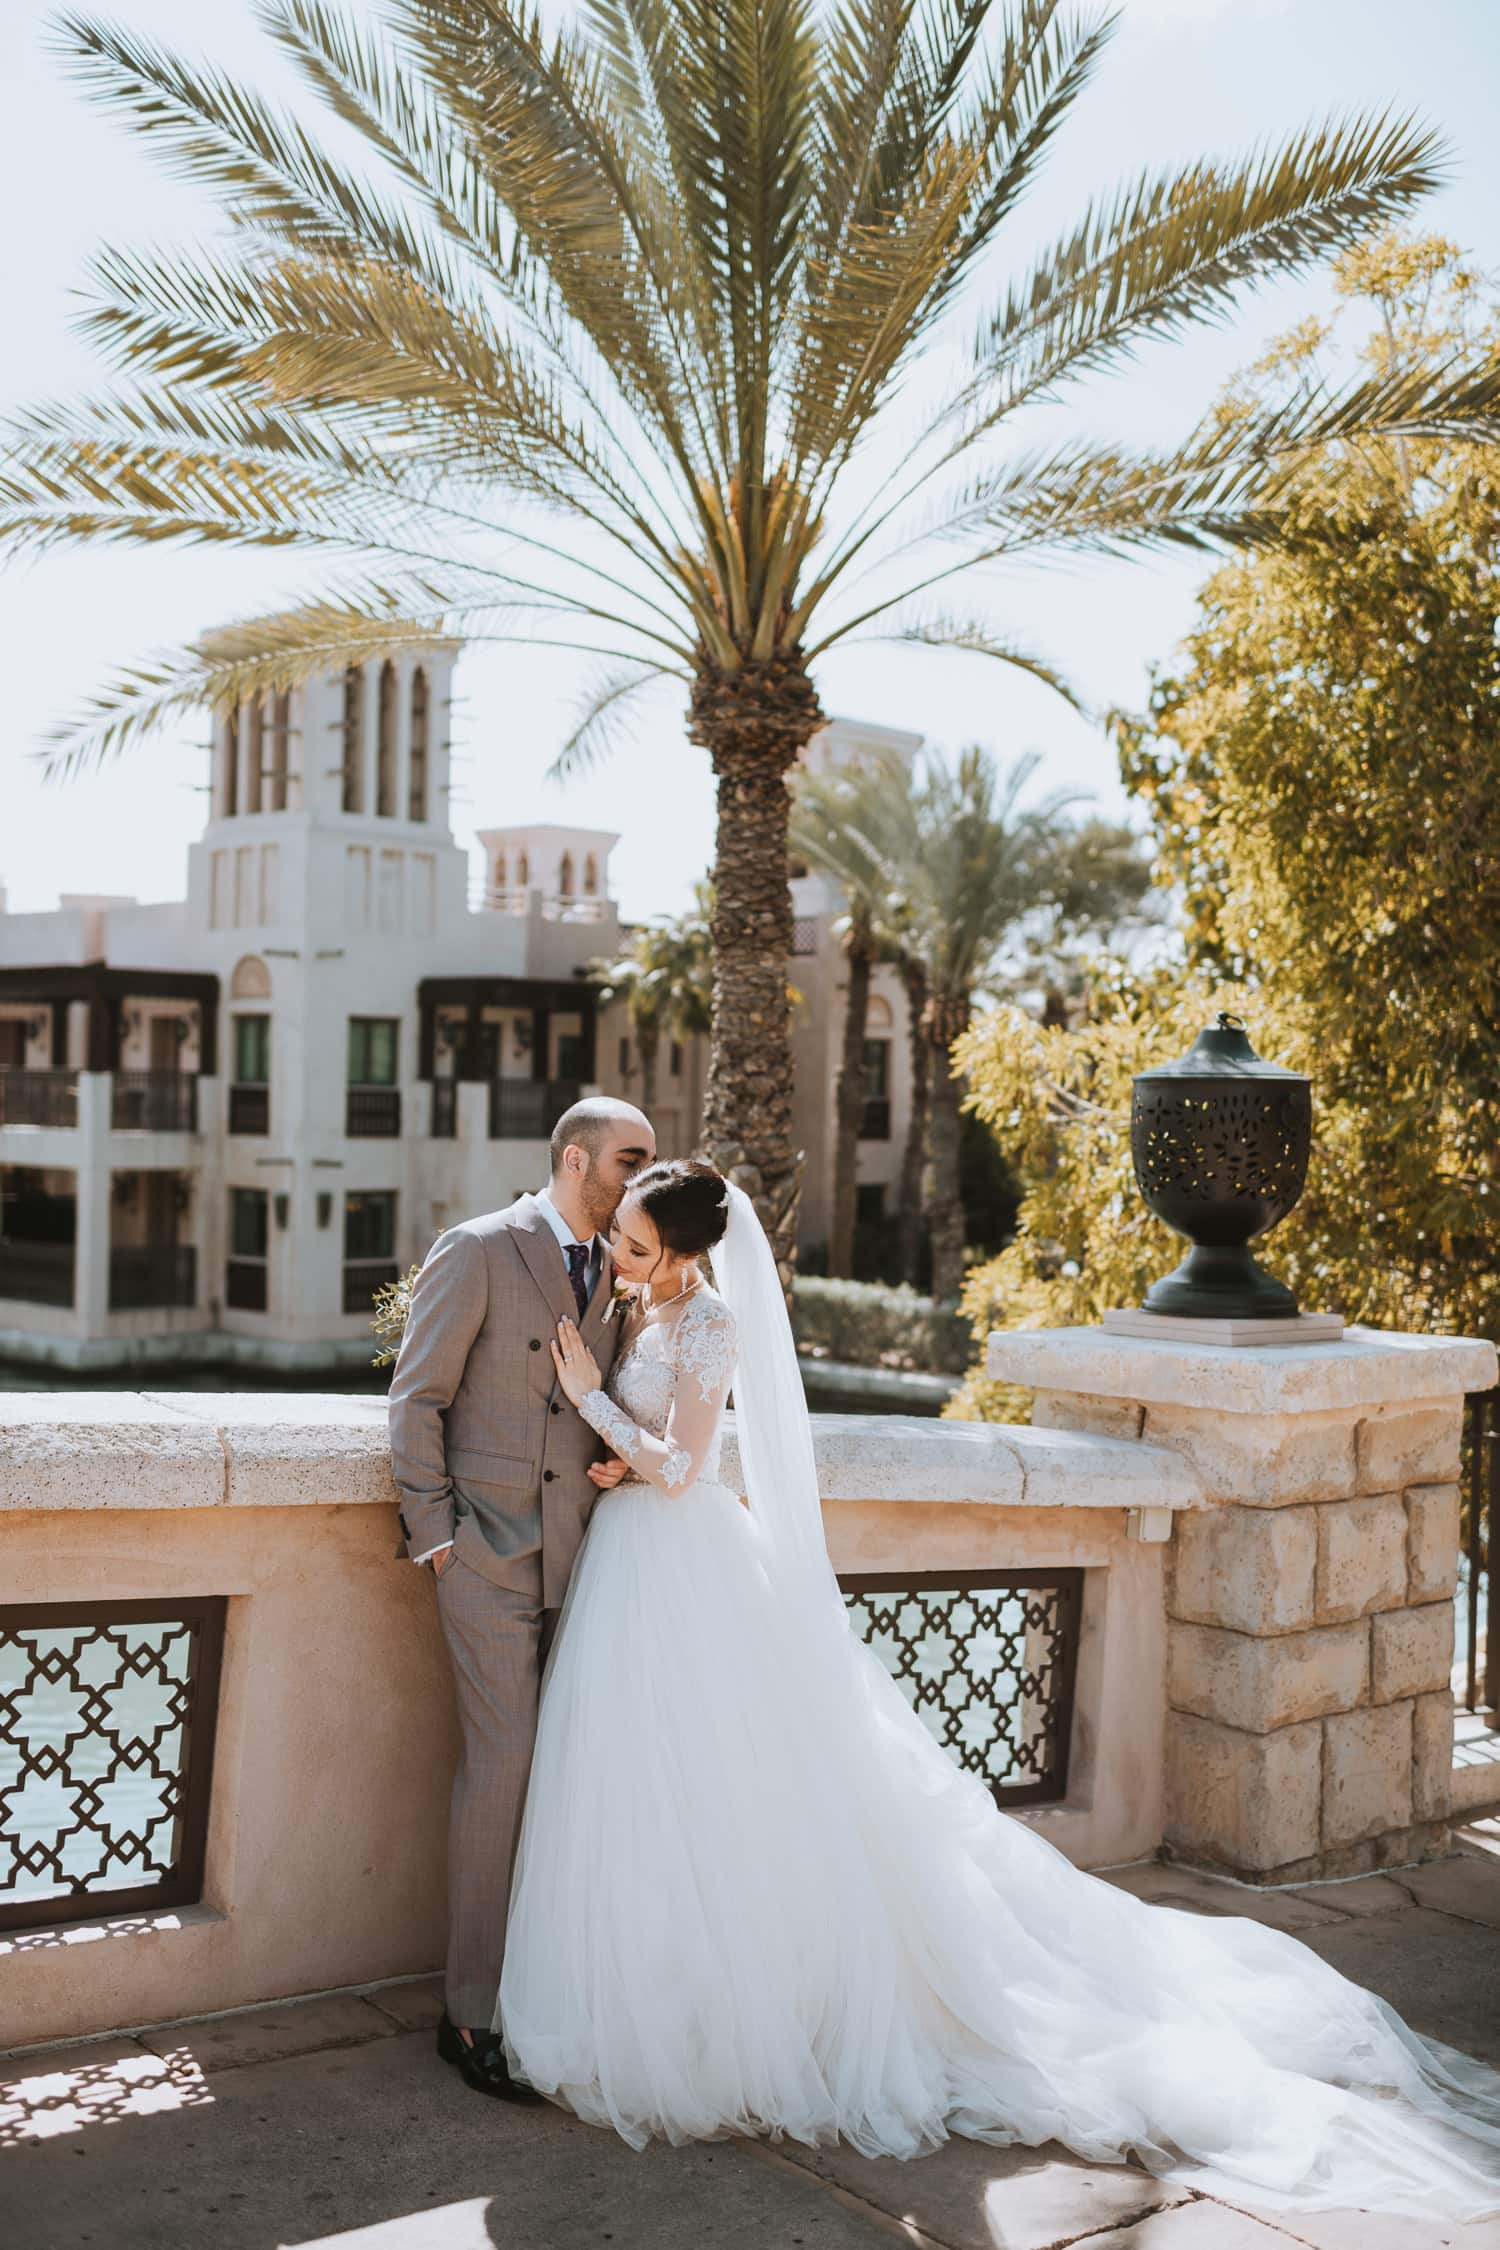 Whimsical Dubai Wedding Photo on the bridge in the Jumeirah Al Qasr resort